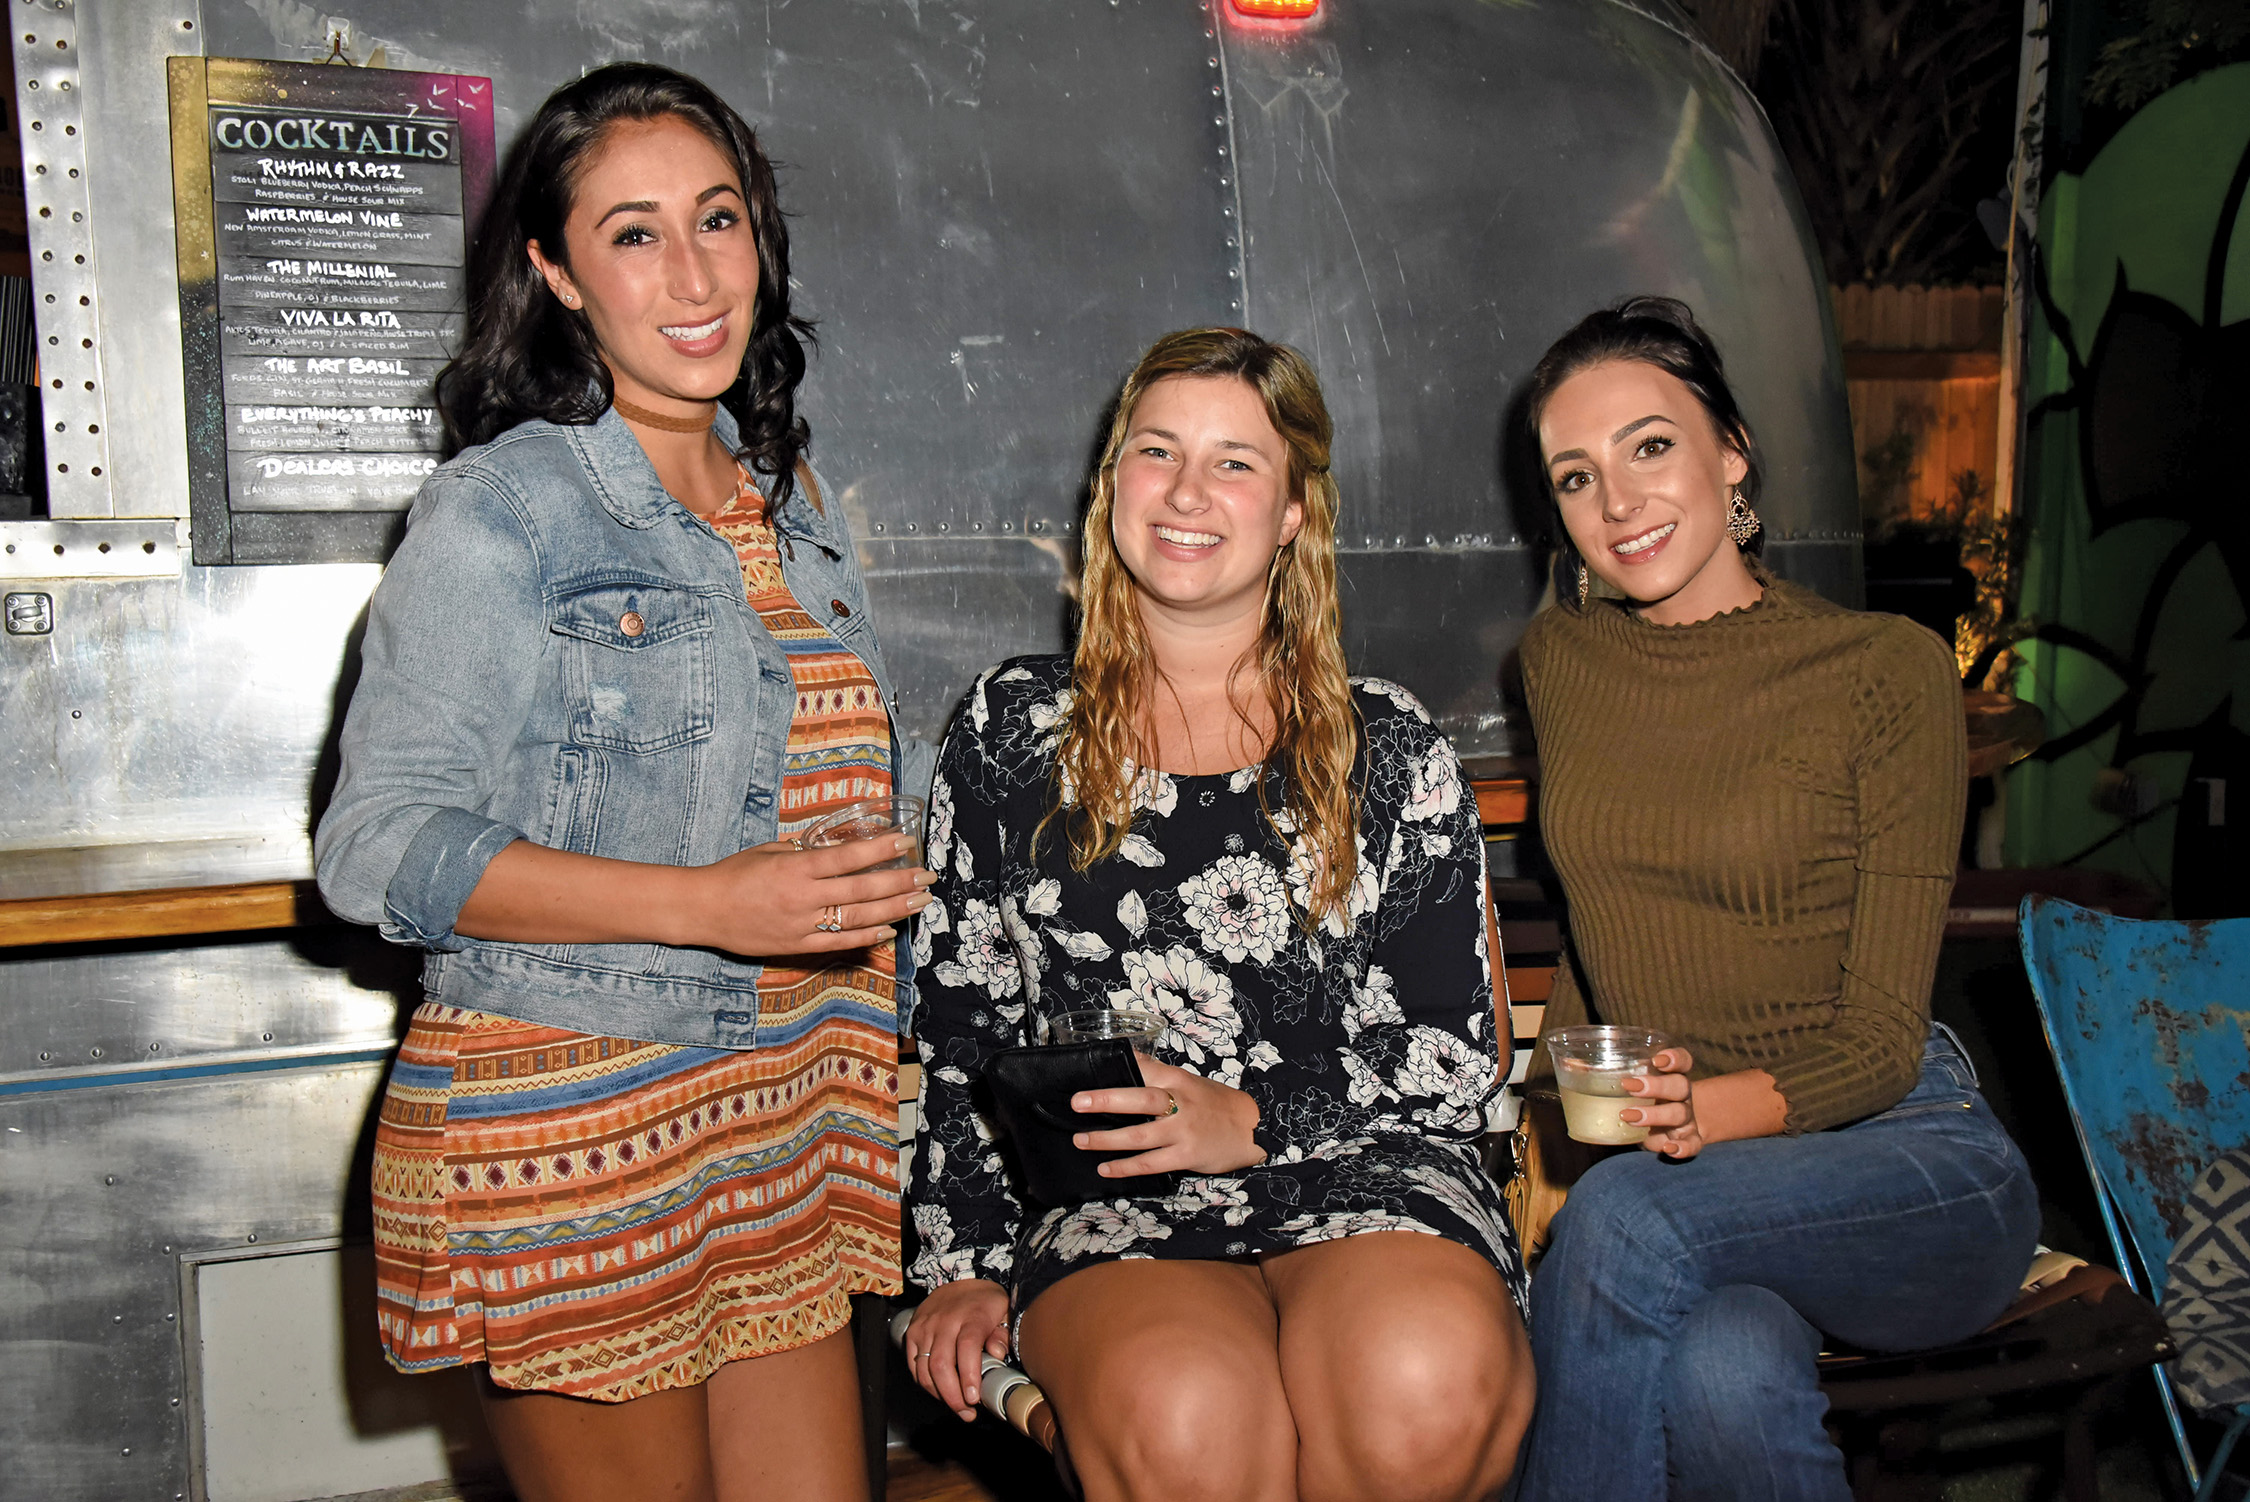 Katherine-Lewis-Erin-Walsh-and-Ashley-Krenitsky-Around-Town-The-Seen-Fort-Lauderdale-Venice-Magazine-Michele-Eve-Sandberg